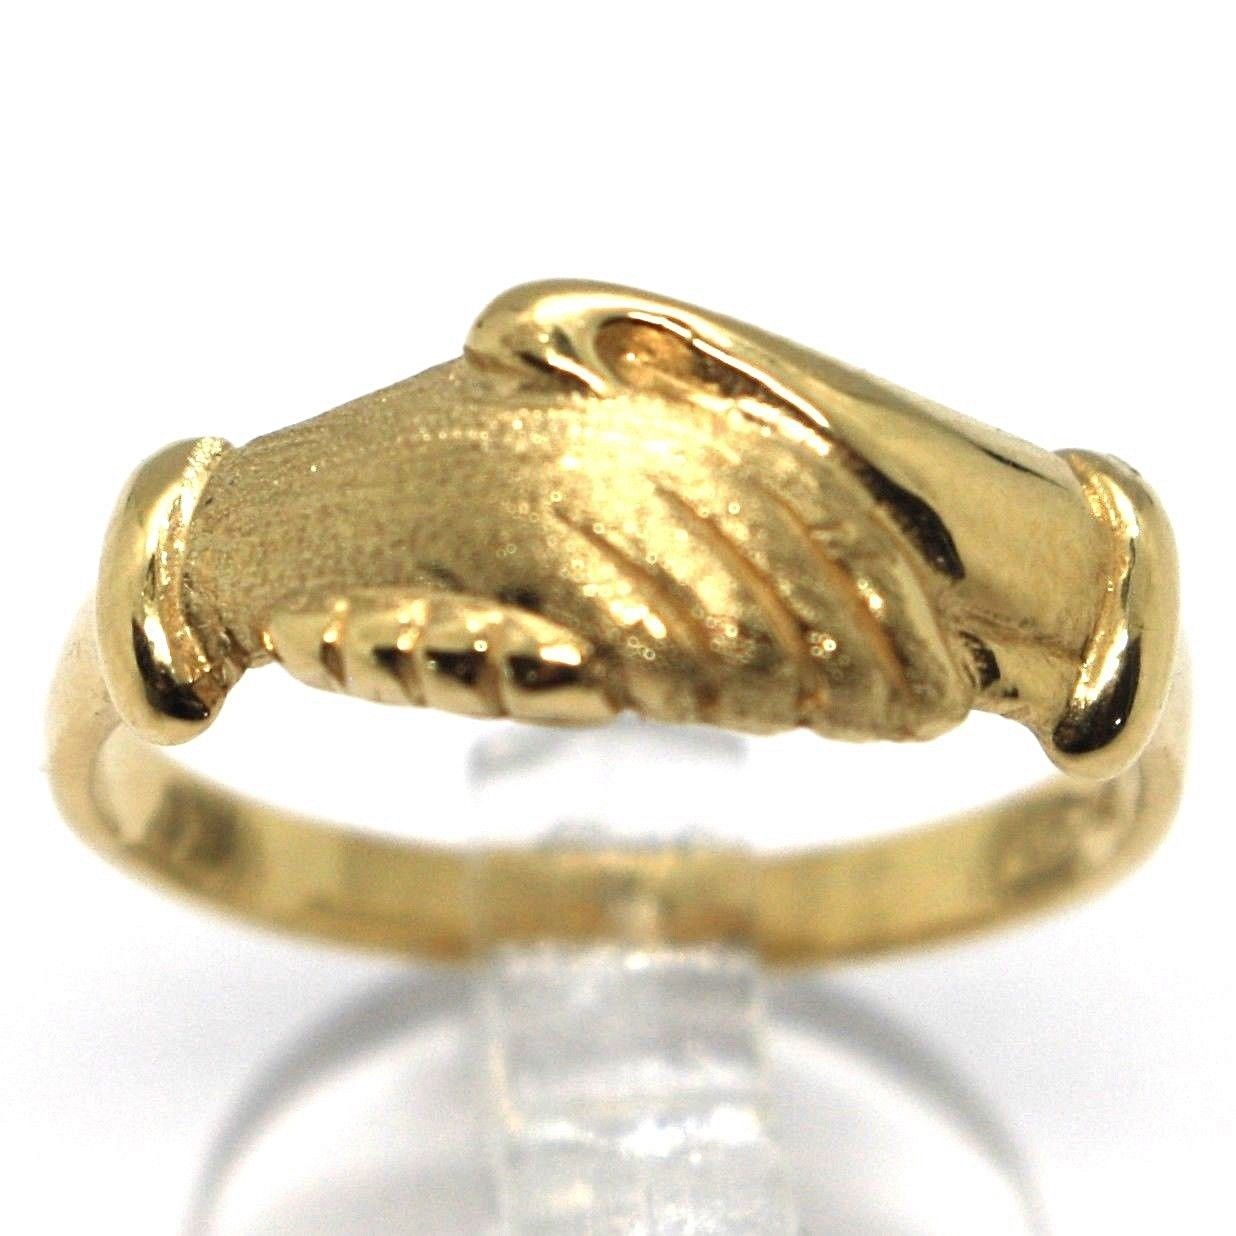 Yellow Gold Ring 750 18k, Santa Rita, Hands, Polished and Satin, Italy Made